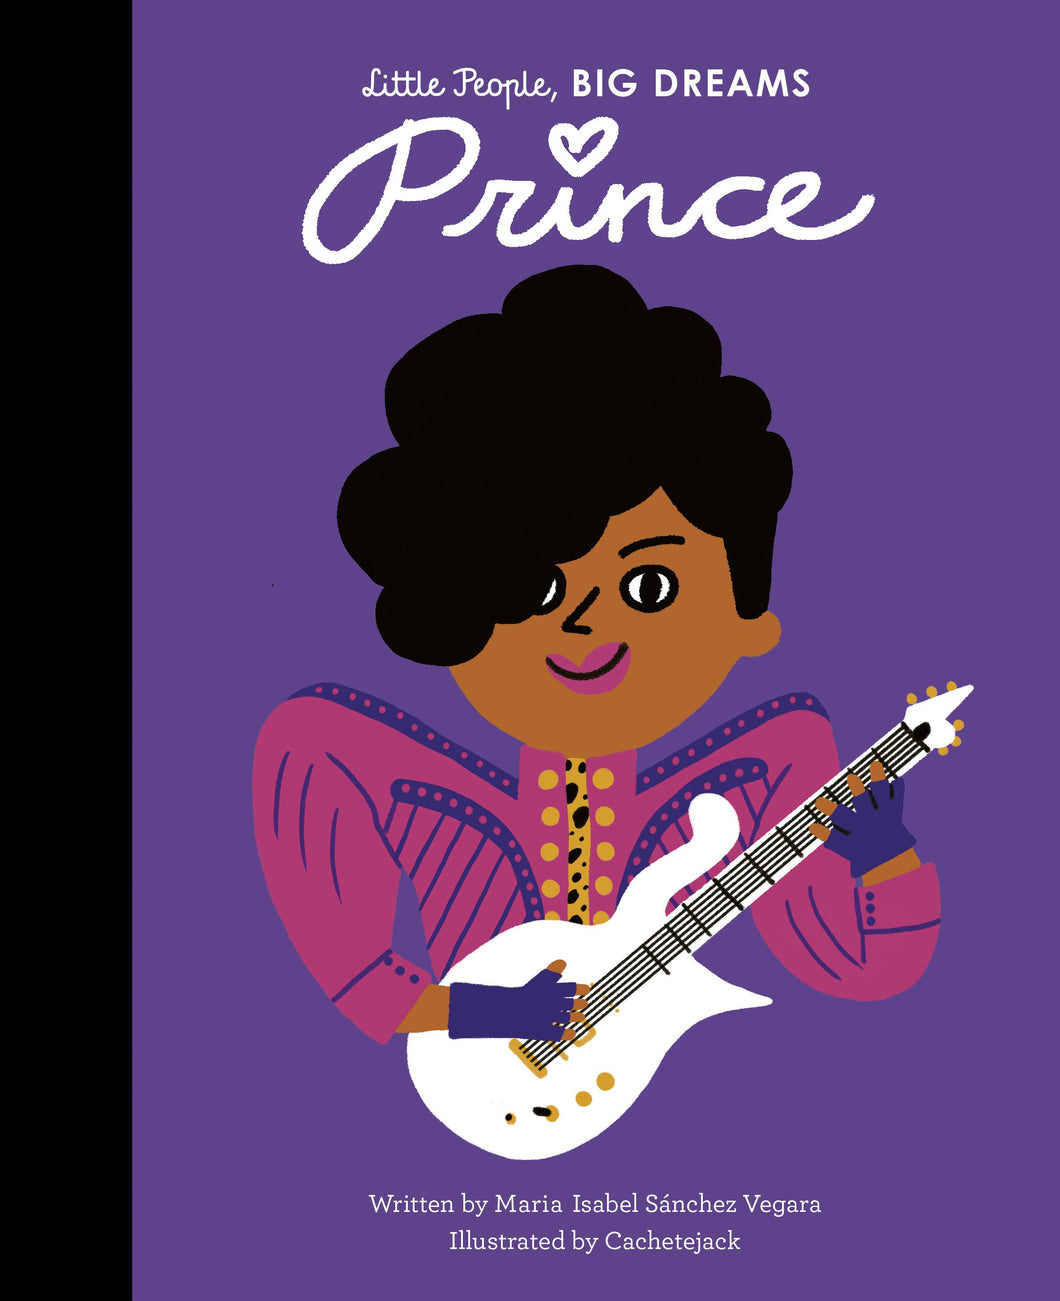 Little People Big Dreams - Prince